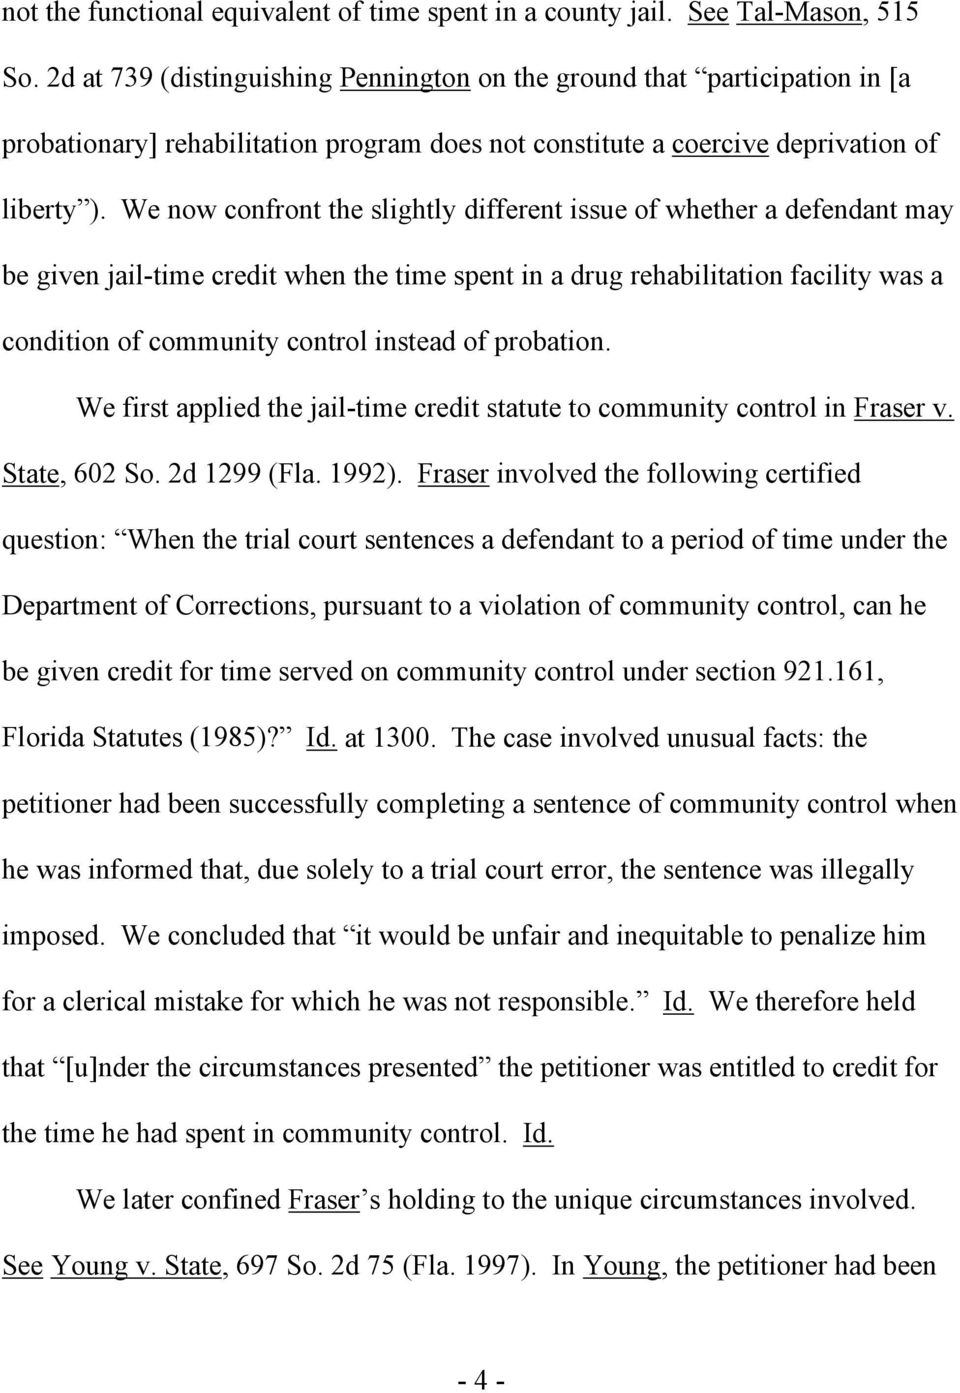 We now confront the slightly different issue of whether a defendant may be given jail-time credit when the time spent in a drug rehabilitation facility was a condition of community control instead of